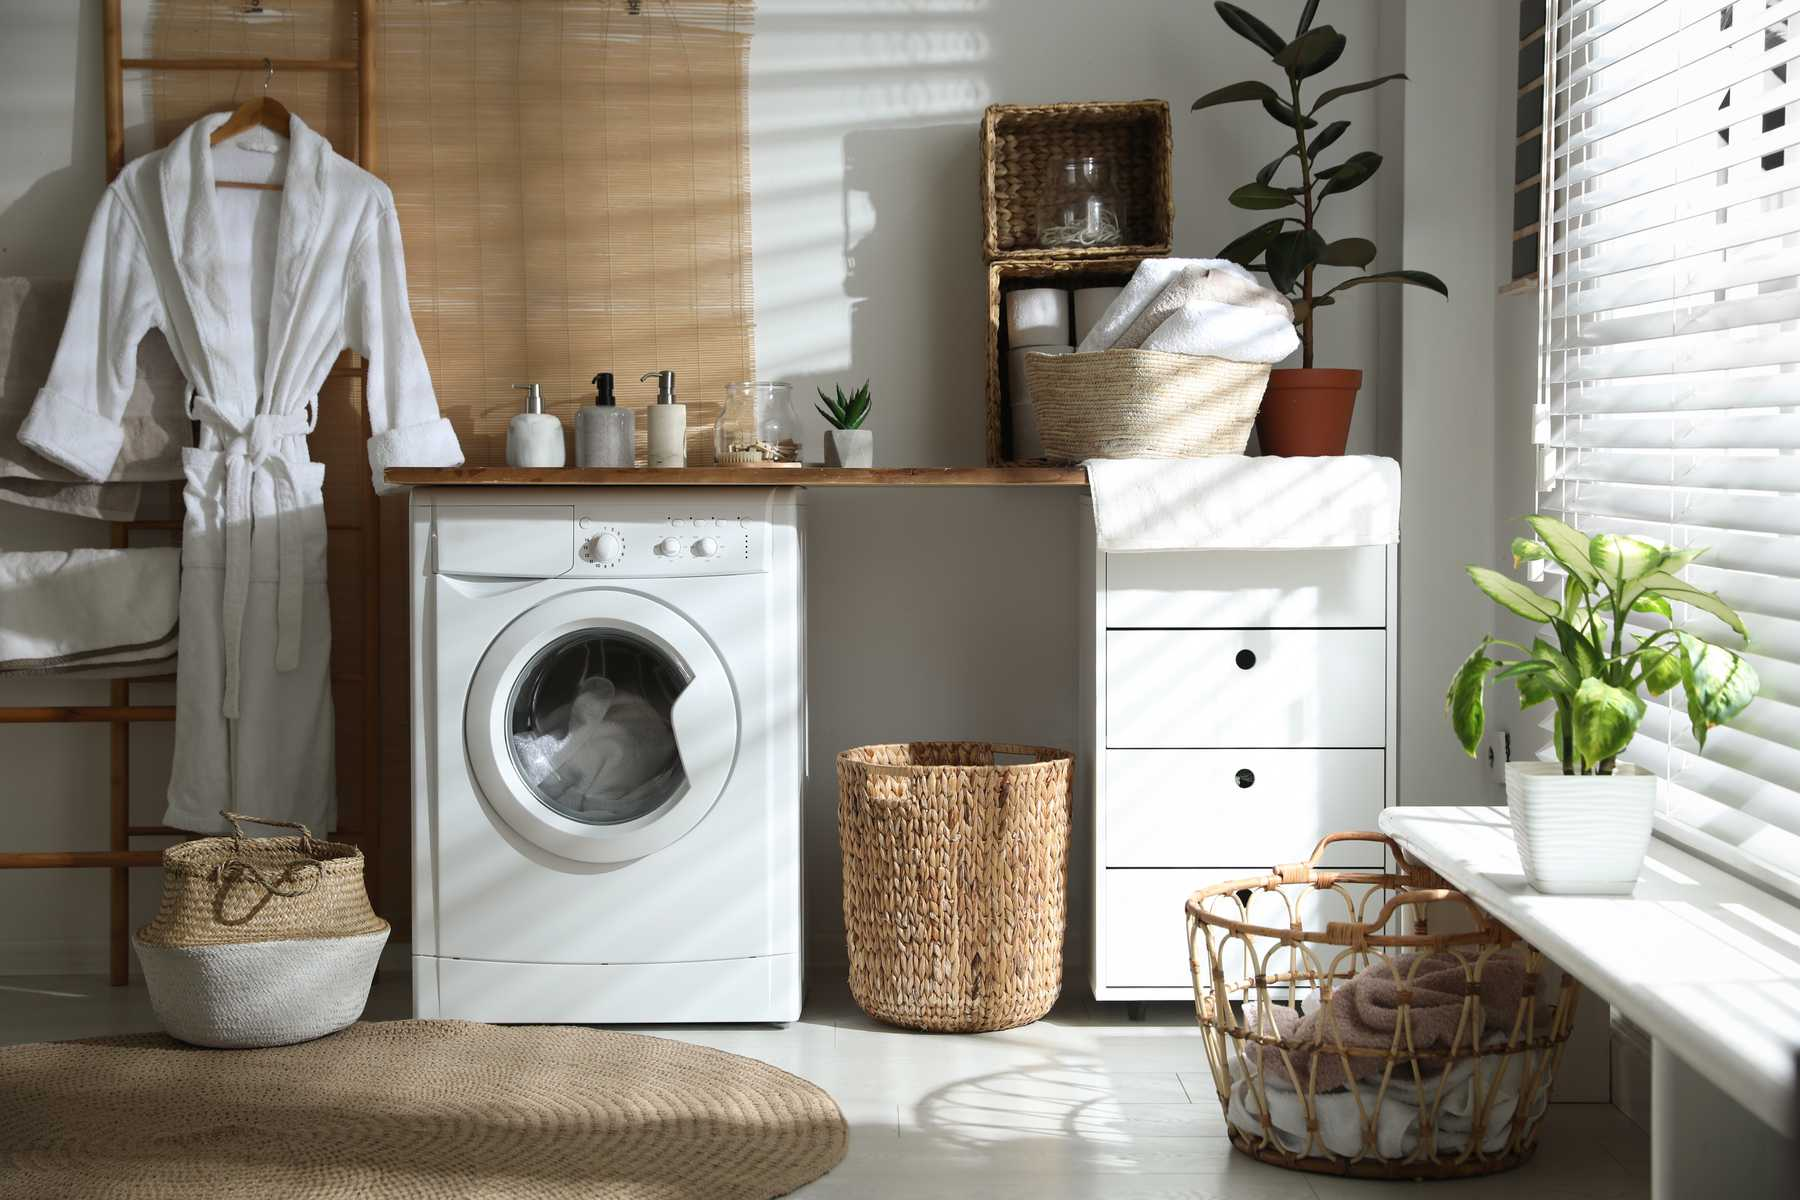 How to Use Your Newly Bought Washing Machine | Cleanipedia